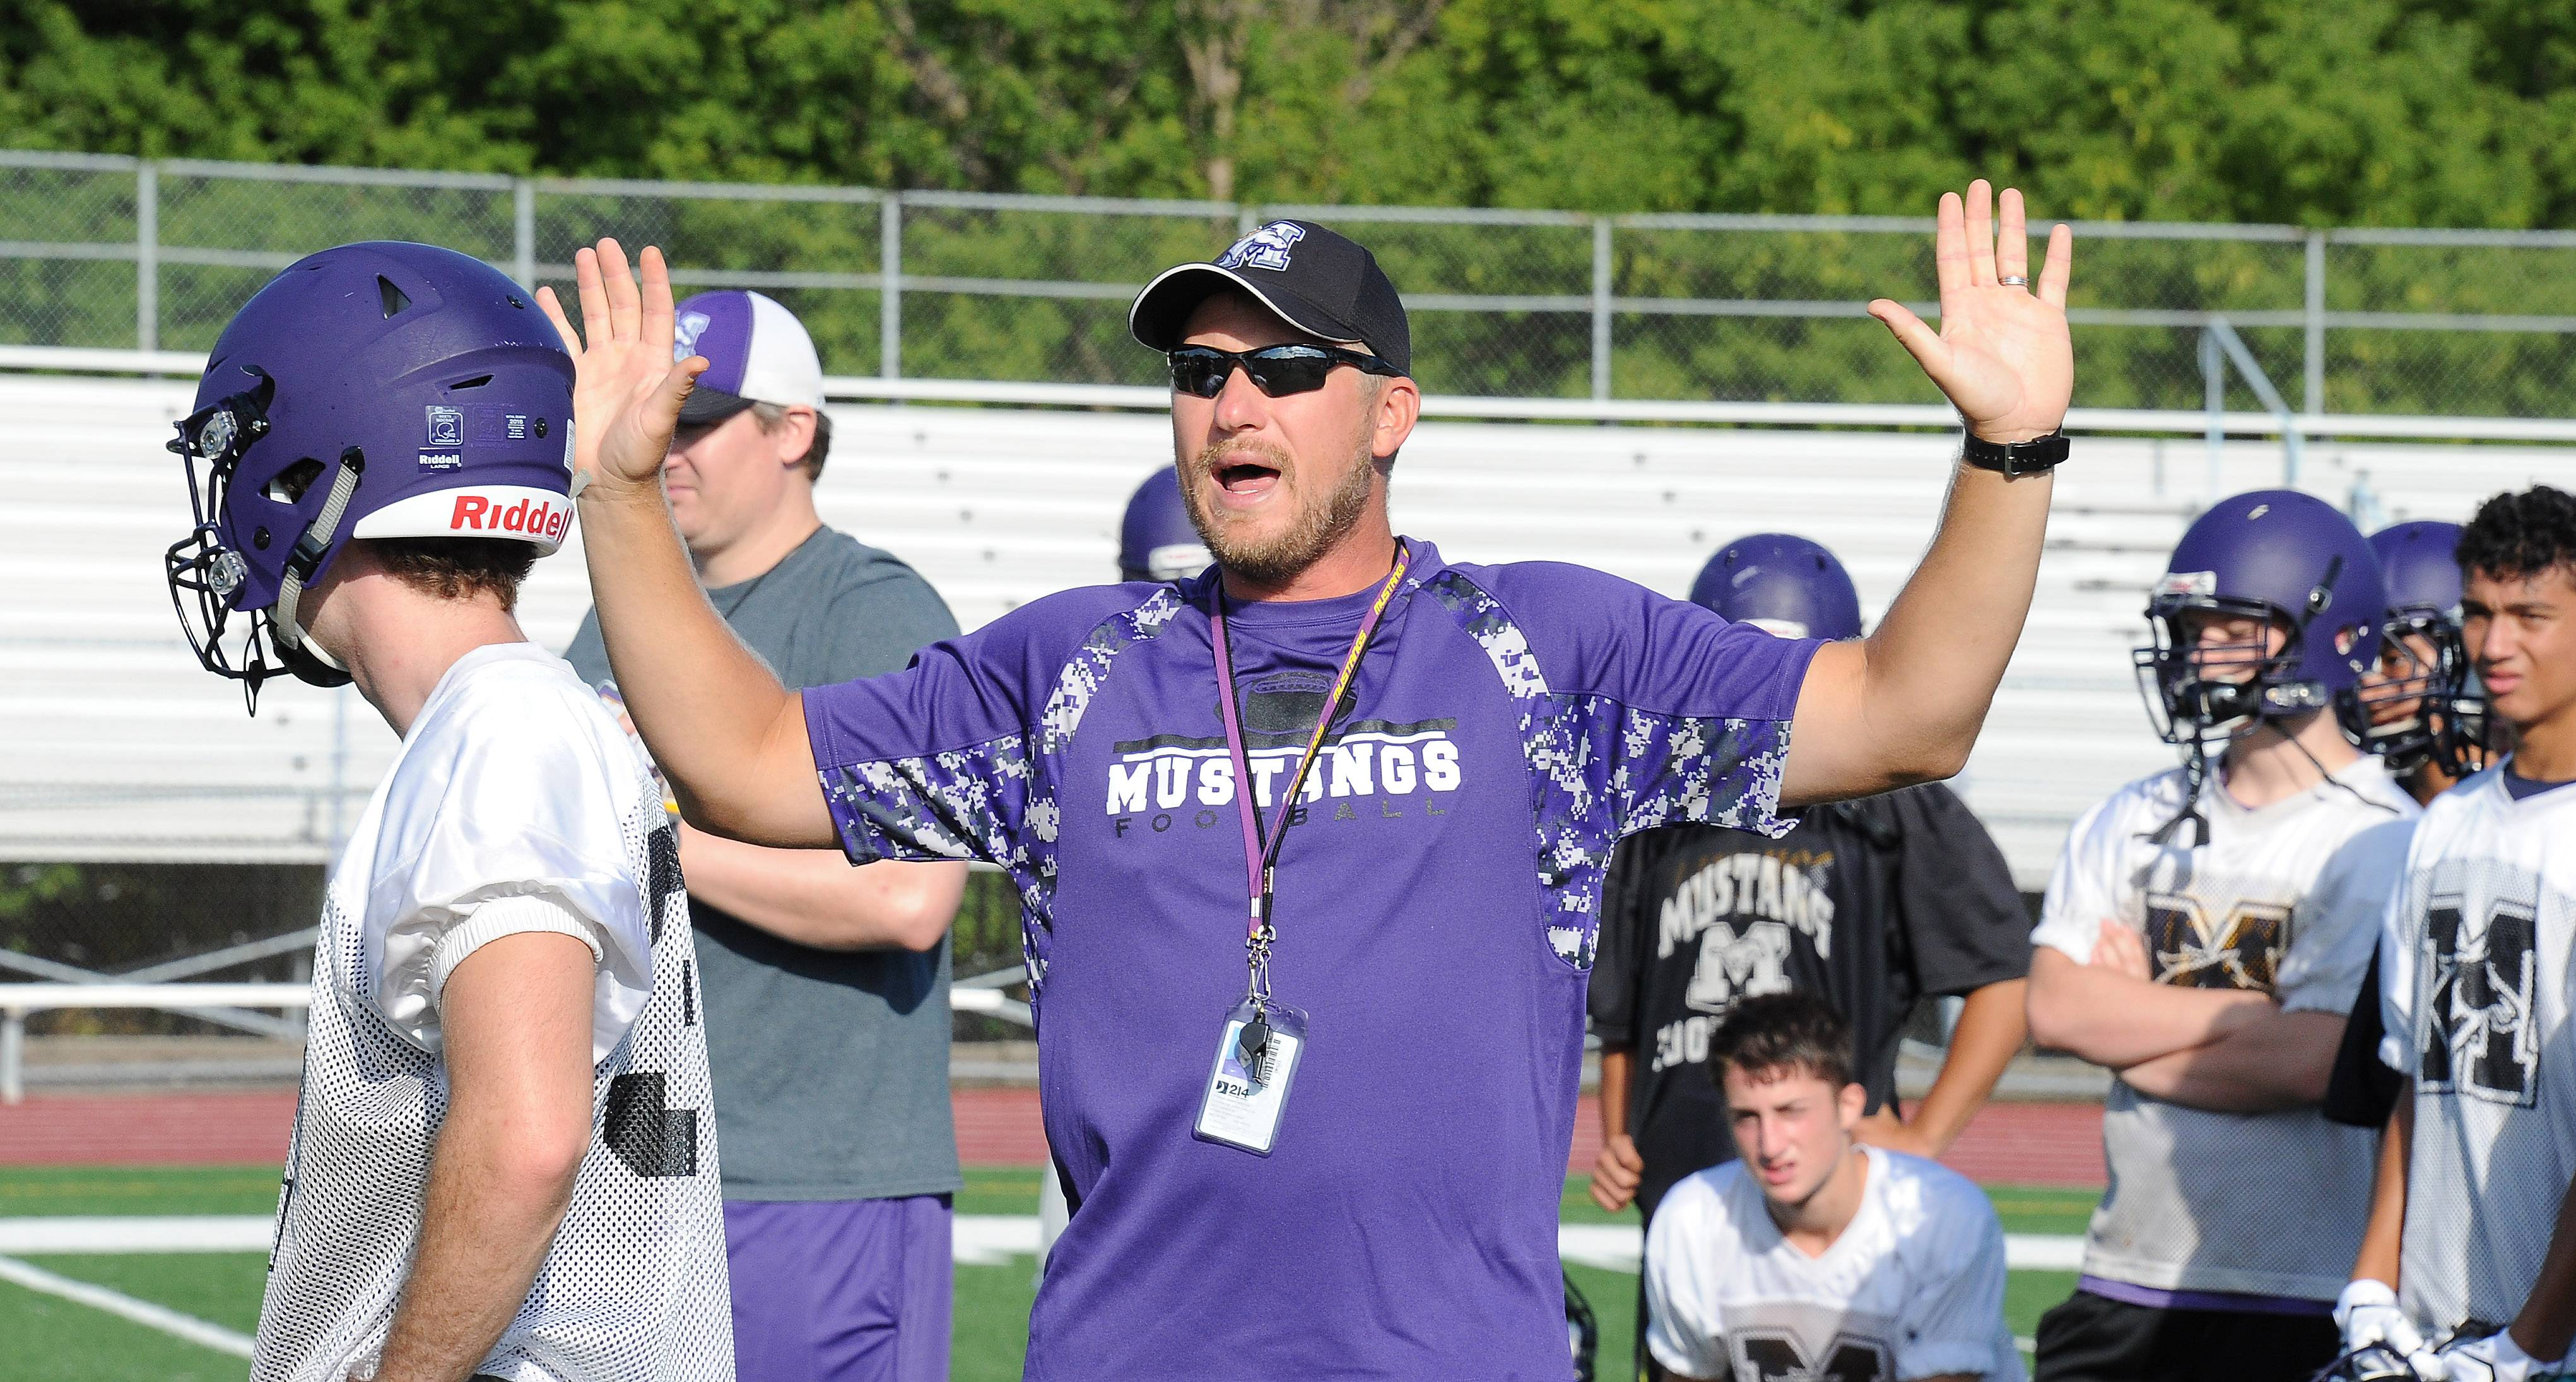 Rolling Meadows coach Matt Mishler speaks to his players on the first day of practice.